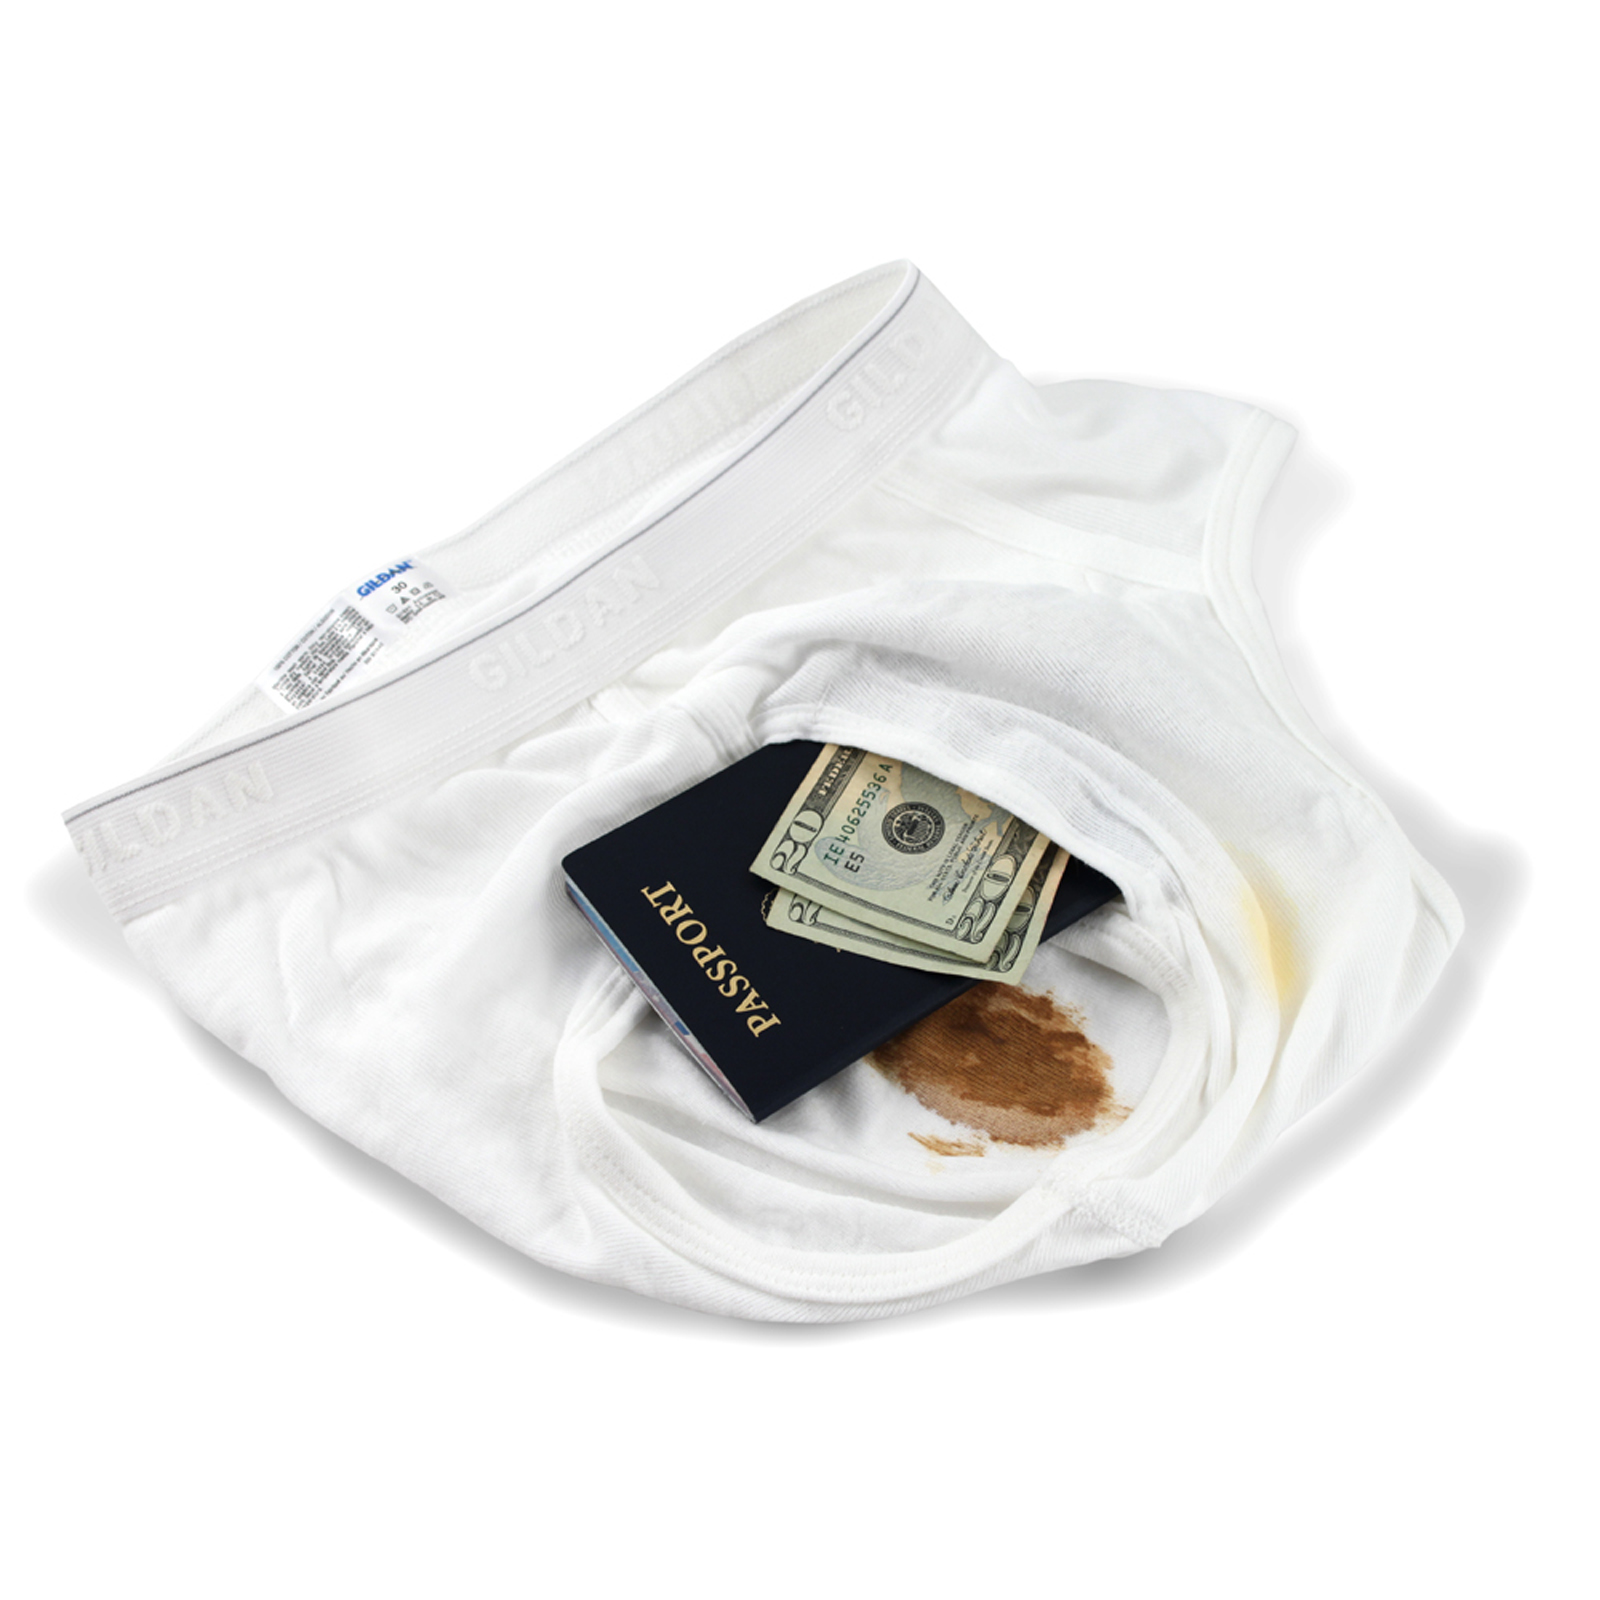 The Brief Safe Travel Security Hidden Contents Wallet Passport Protector